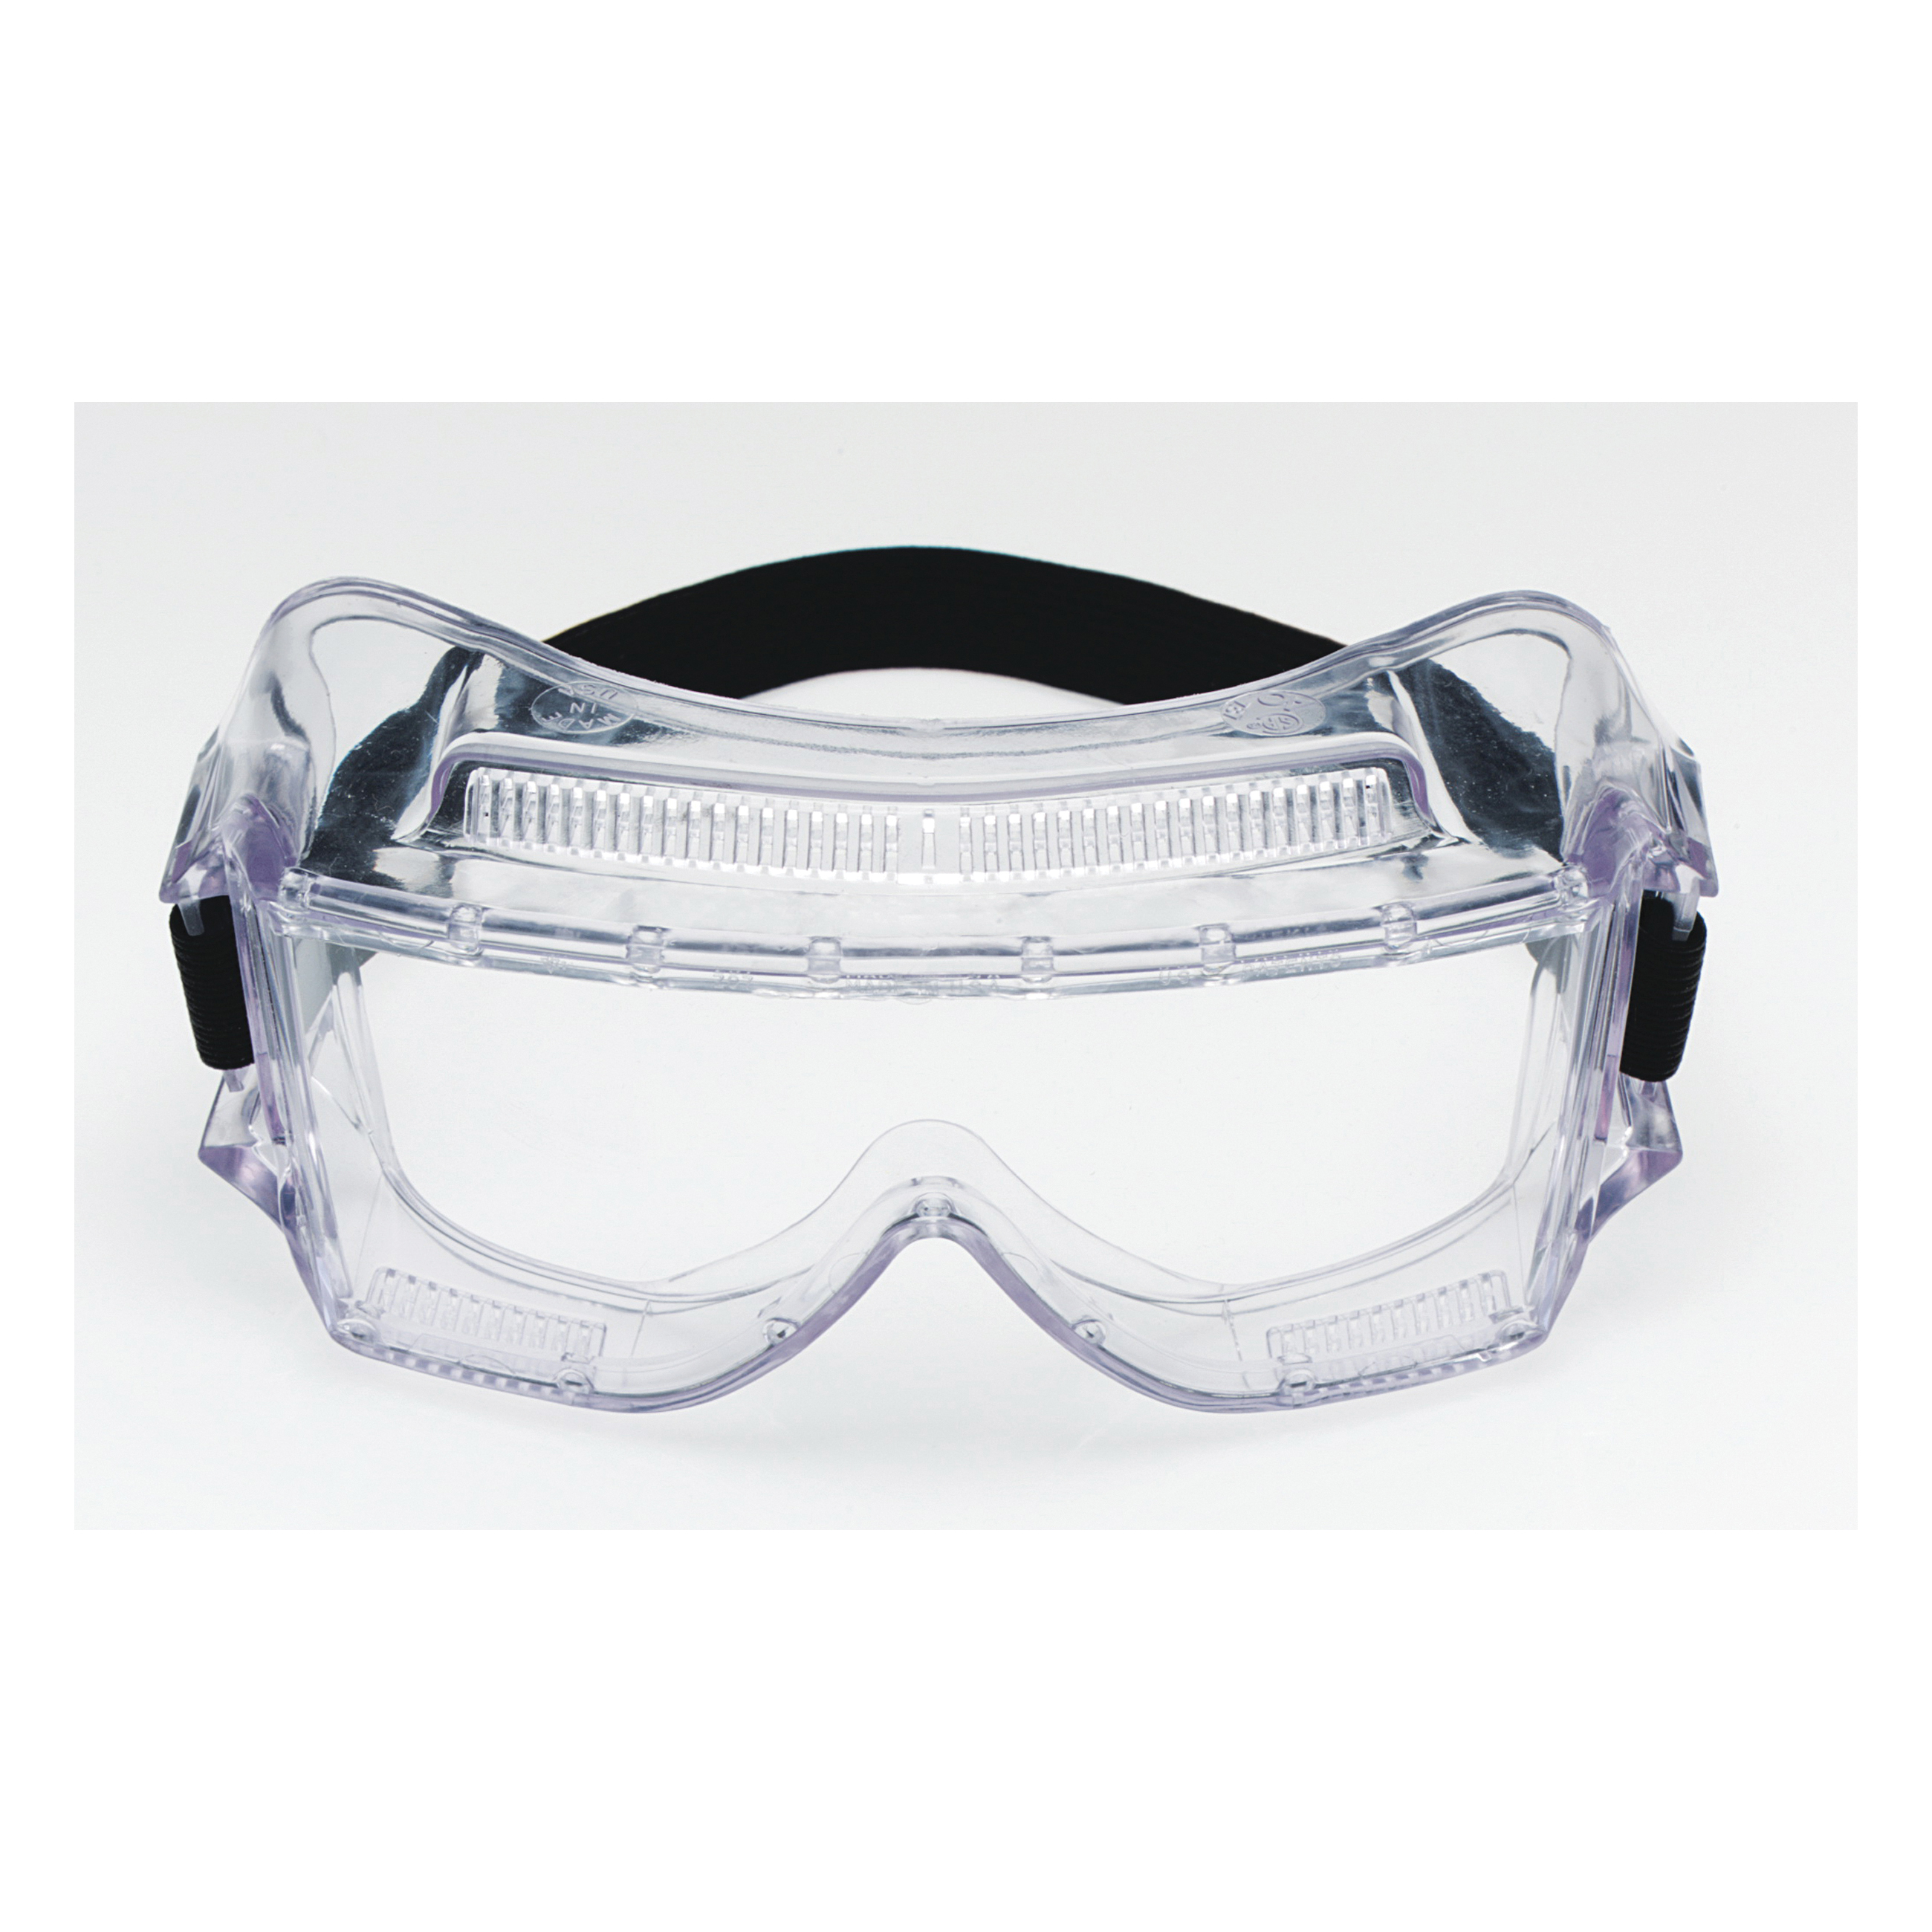 3M™ Centurion™ 078371-62388 40301-00000-10 Standard Value Safety Goggles, Anti-Fog/Impact Resistant/UV-Protective Clear Polycarbonate Lens, 99.9% % UV Protection, Elastic Strap, Specifications Met: ANSI Z87.1-2003, CSA Z94.3-2007